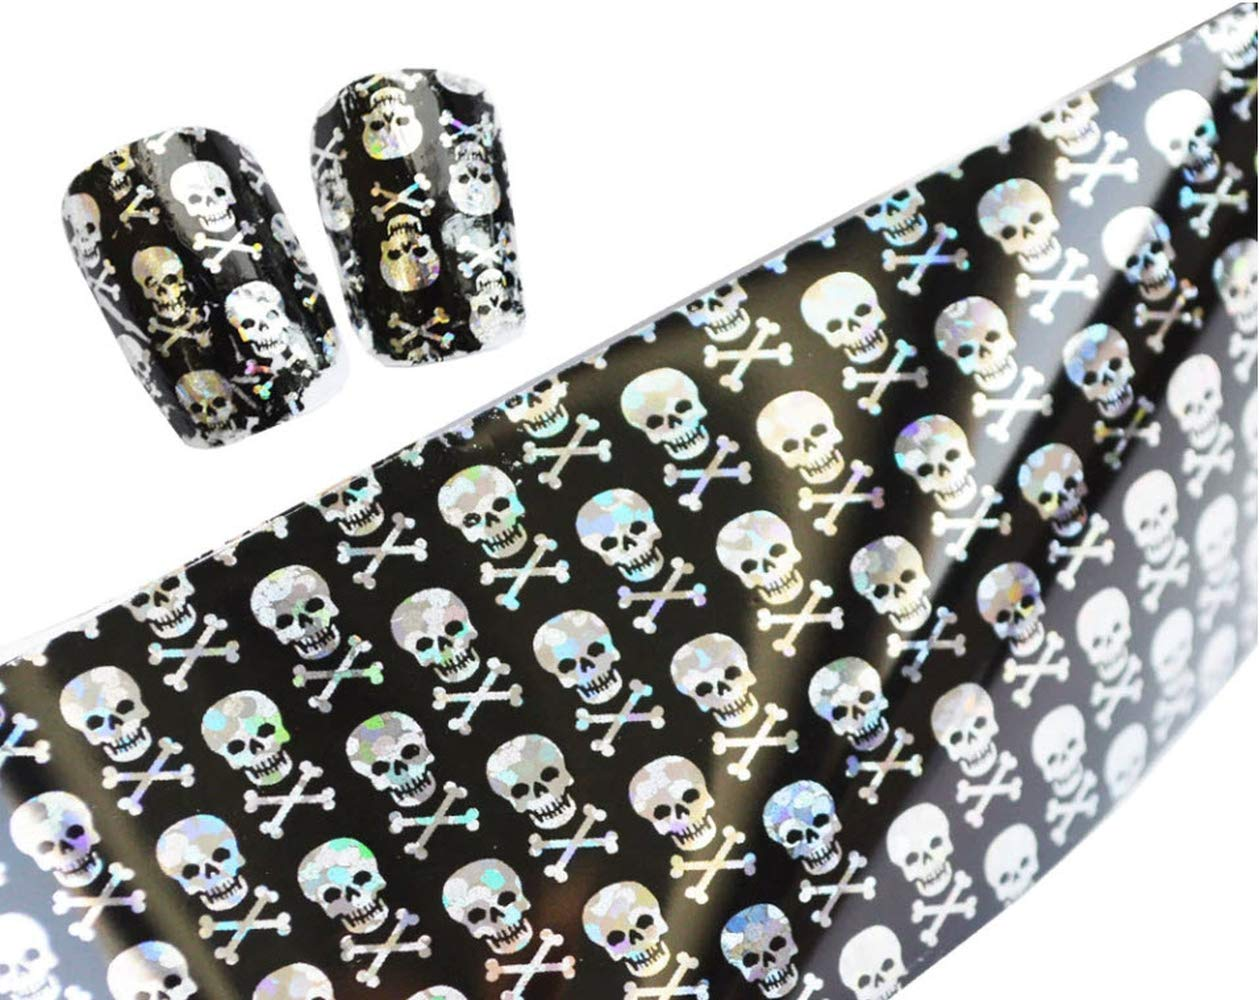 Skull Foil Glitter for Nails Punk Gothic Rockabilly Water color SKULL Nail Wrap Decals Sticker Salon Quality Nail Art - Great for Halloween! 1 Sheet Plus Size Appeal